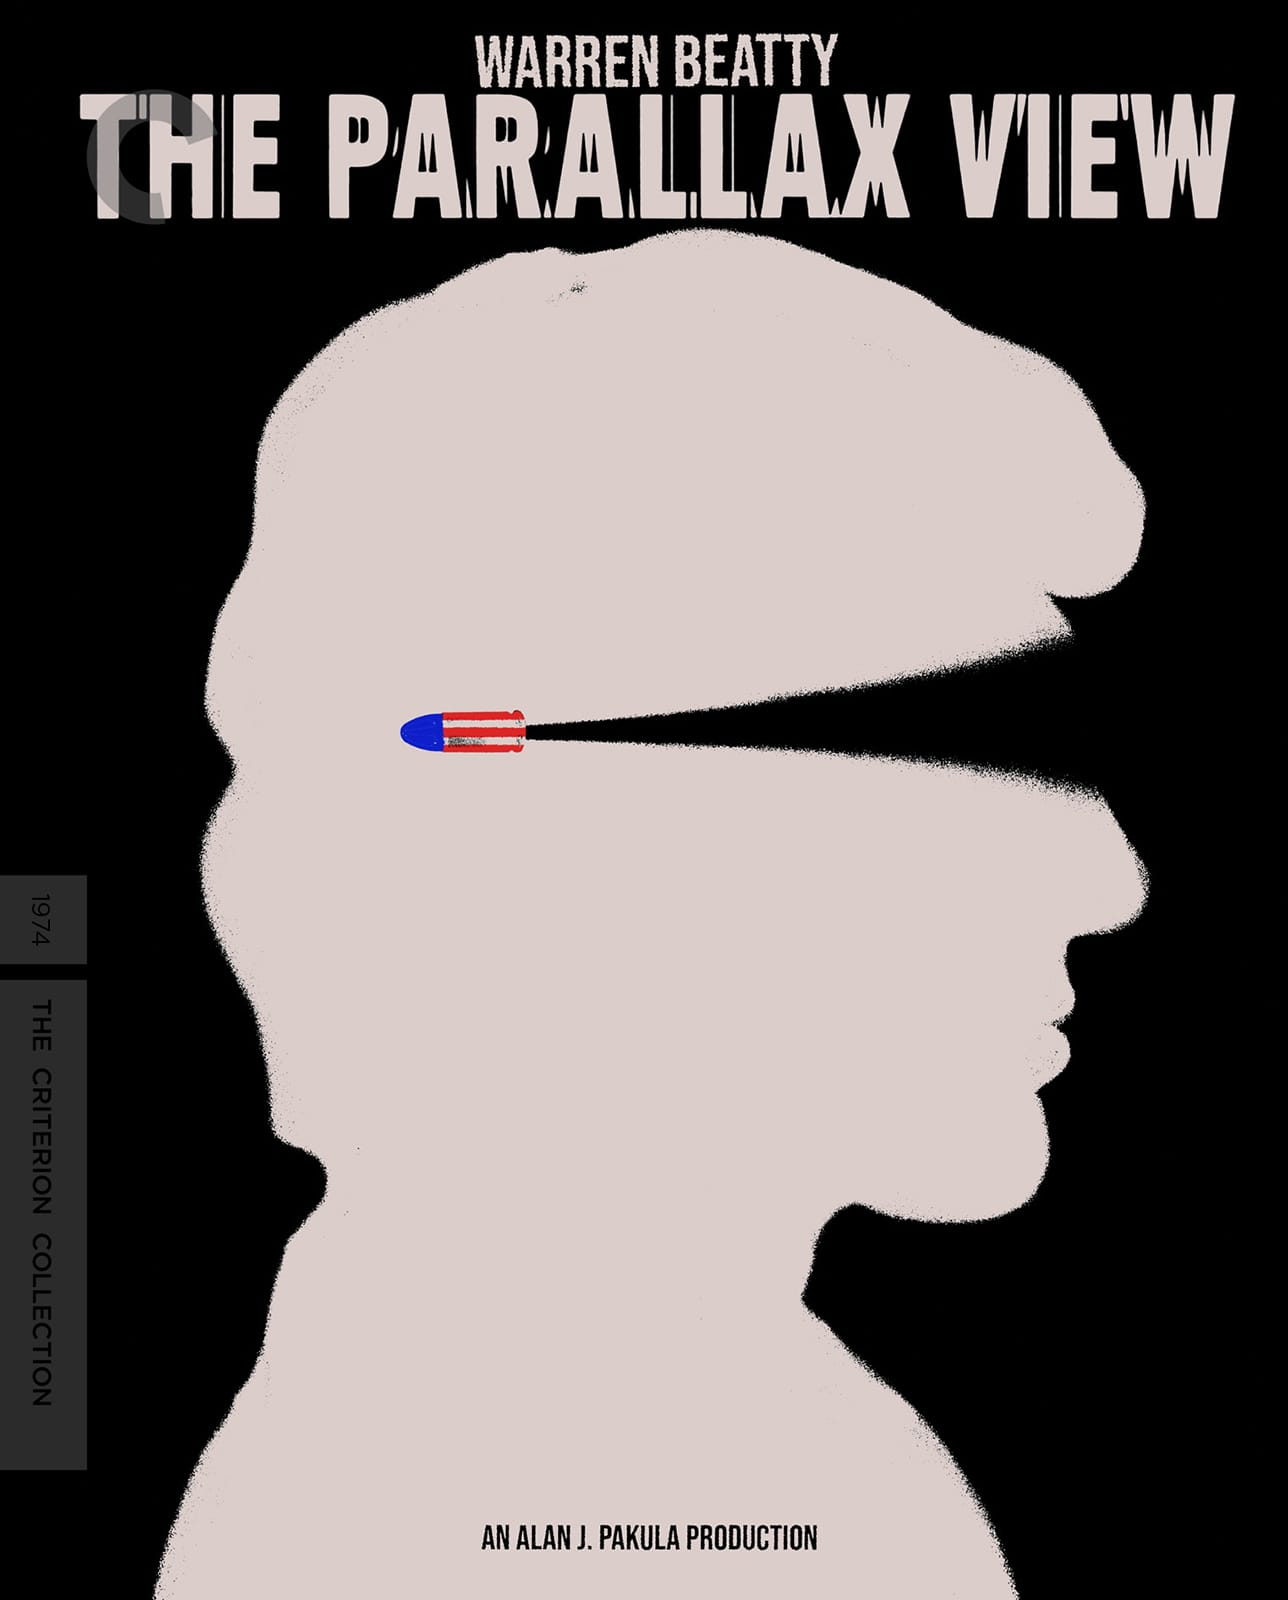 The Parallax View (1974) | The Criterion Collection